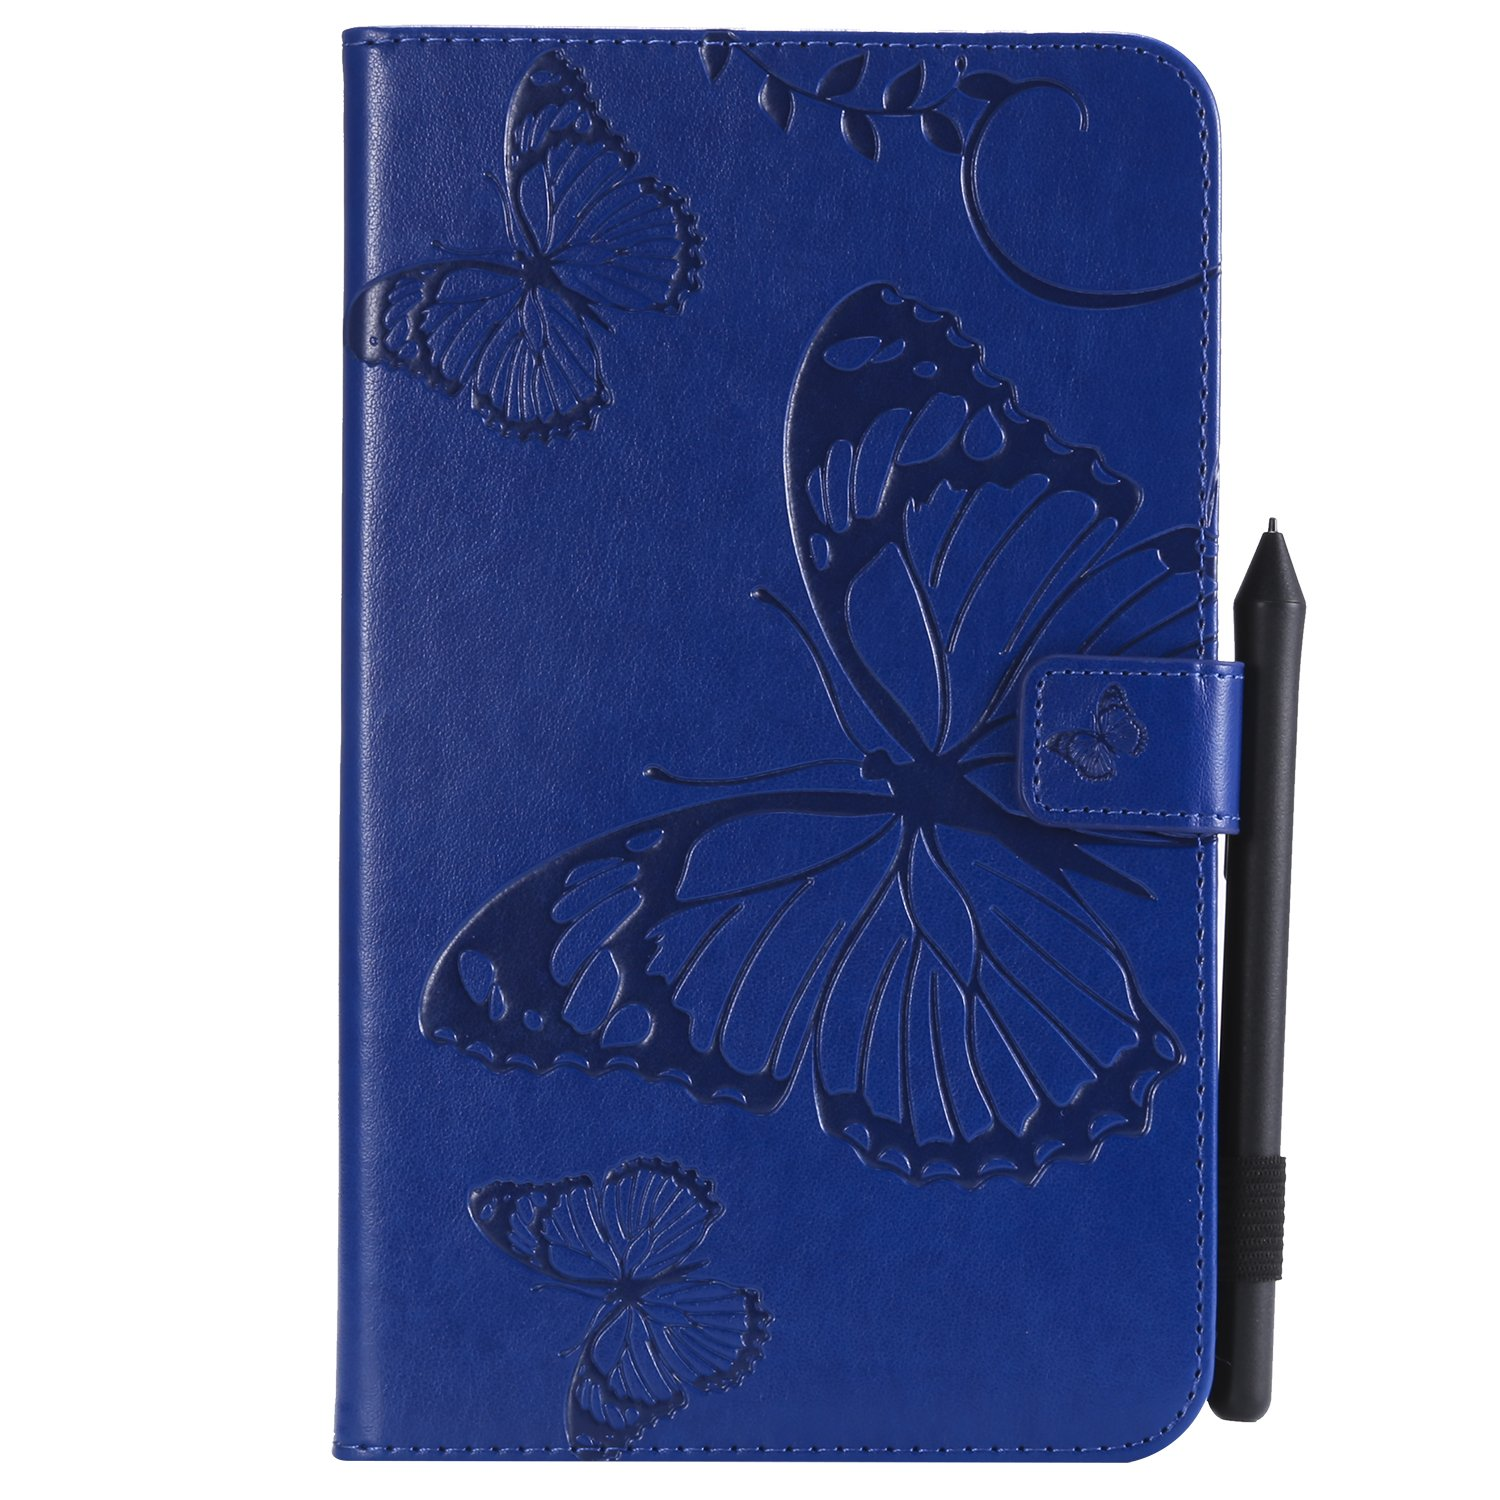 Bear Village Galaxy Tab a 2017 8.0 Inch Case, Butterfly Embossed Anti Scratch Shell with Adjust Stand, Smart Stand PU Leather Case for Samsung Galaxy Tab a 2017 8.0 Inch, Blue by Bear Village